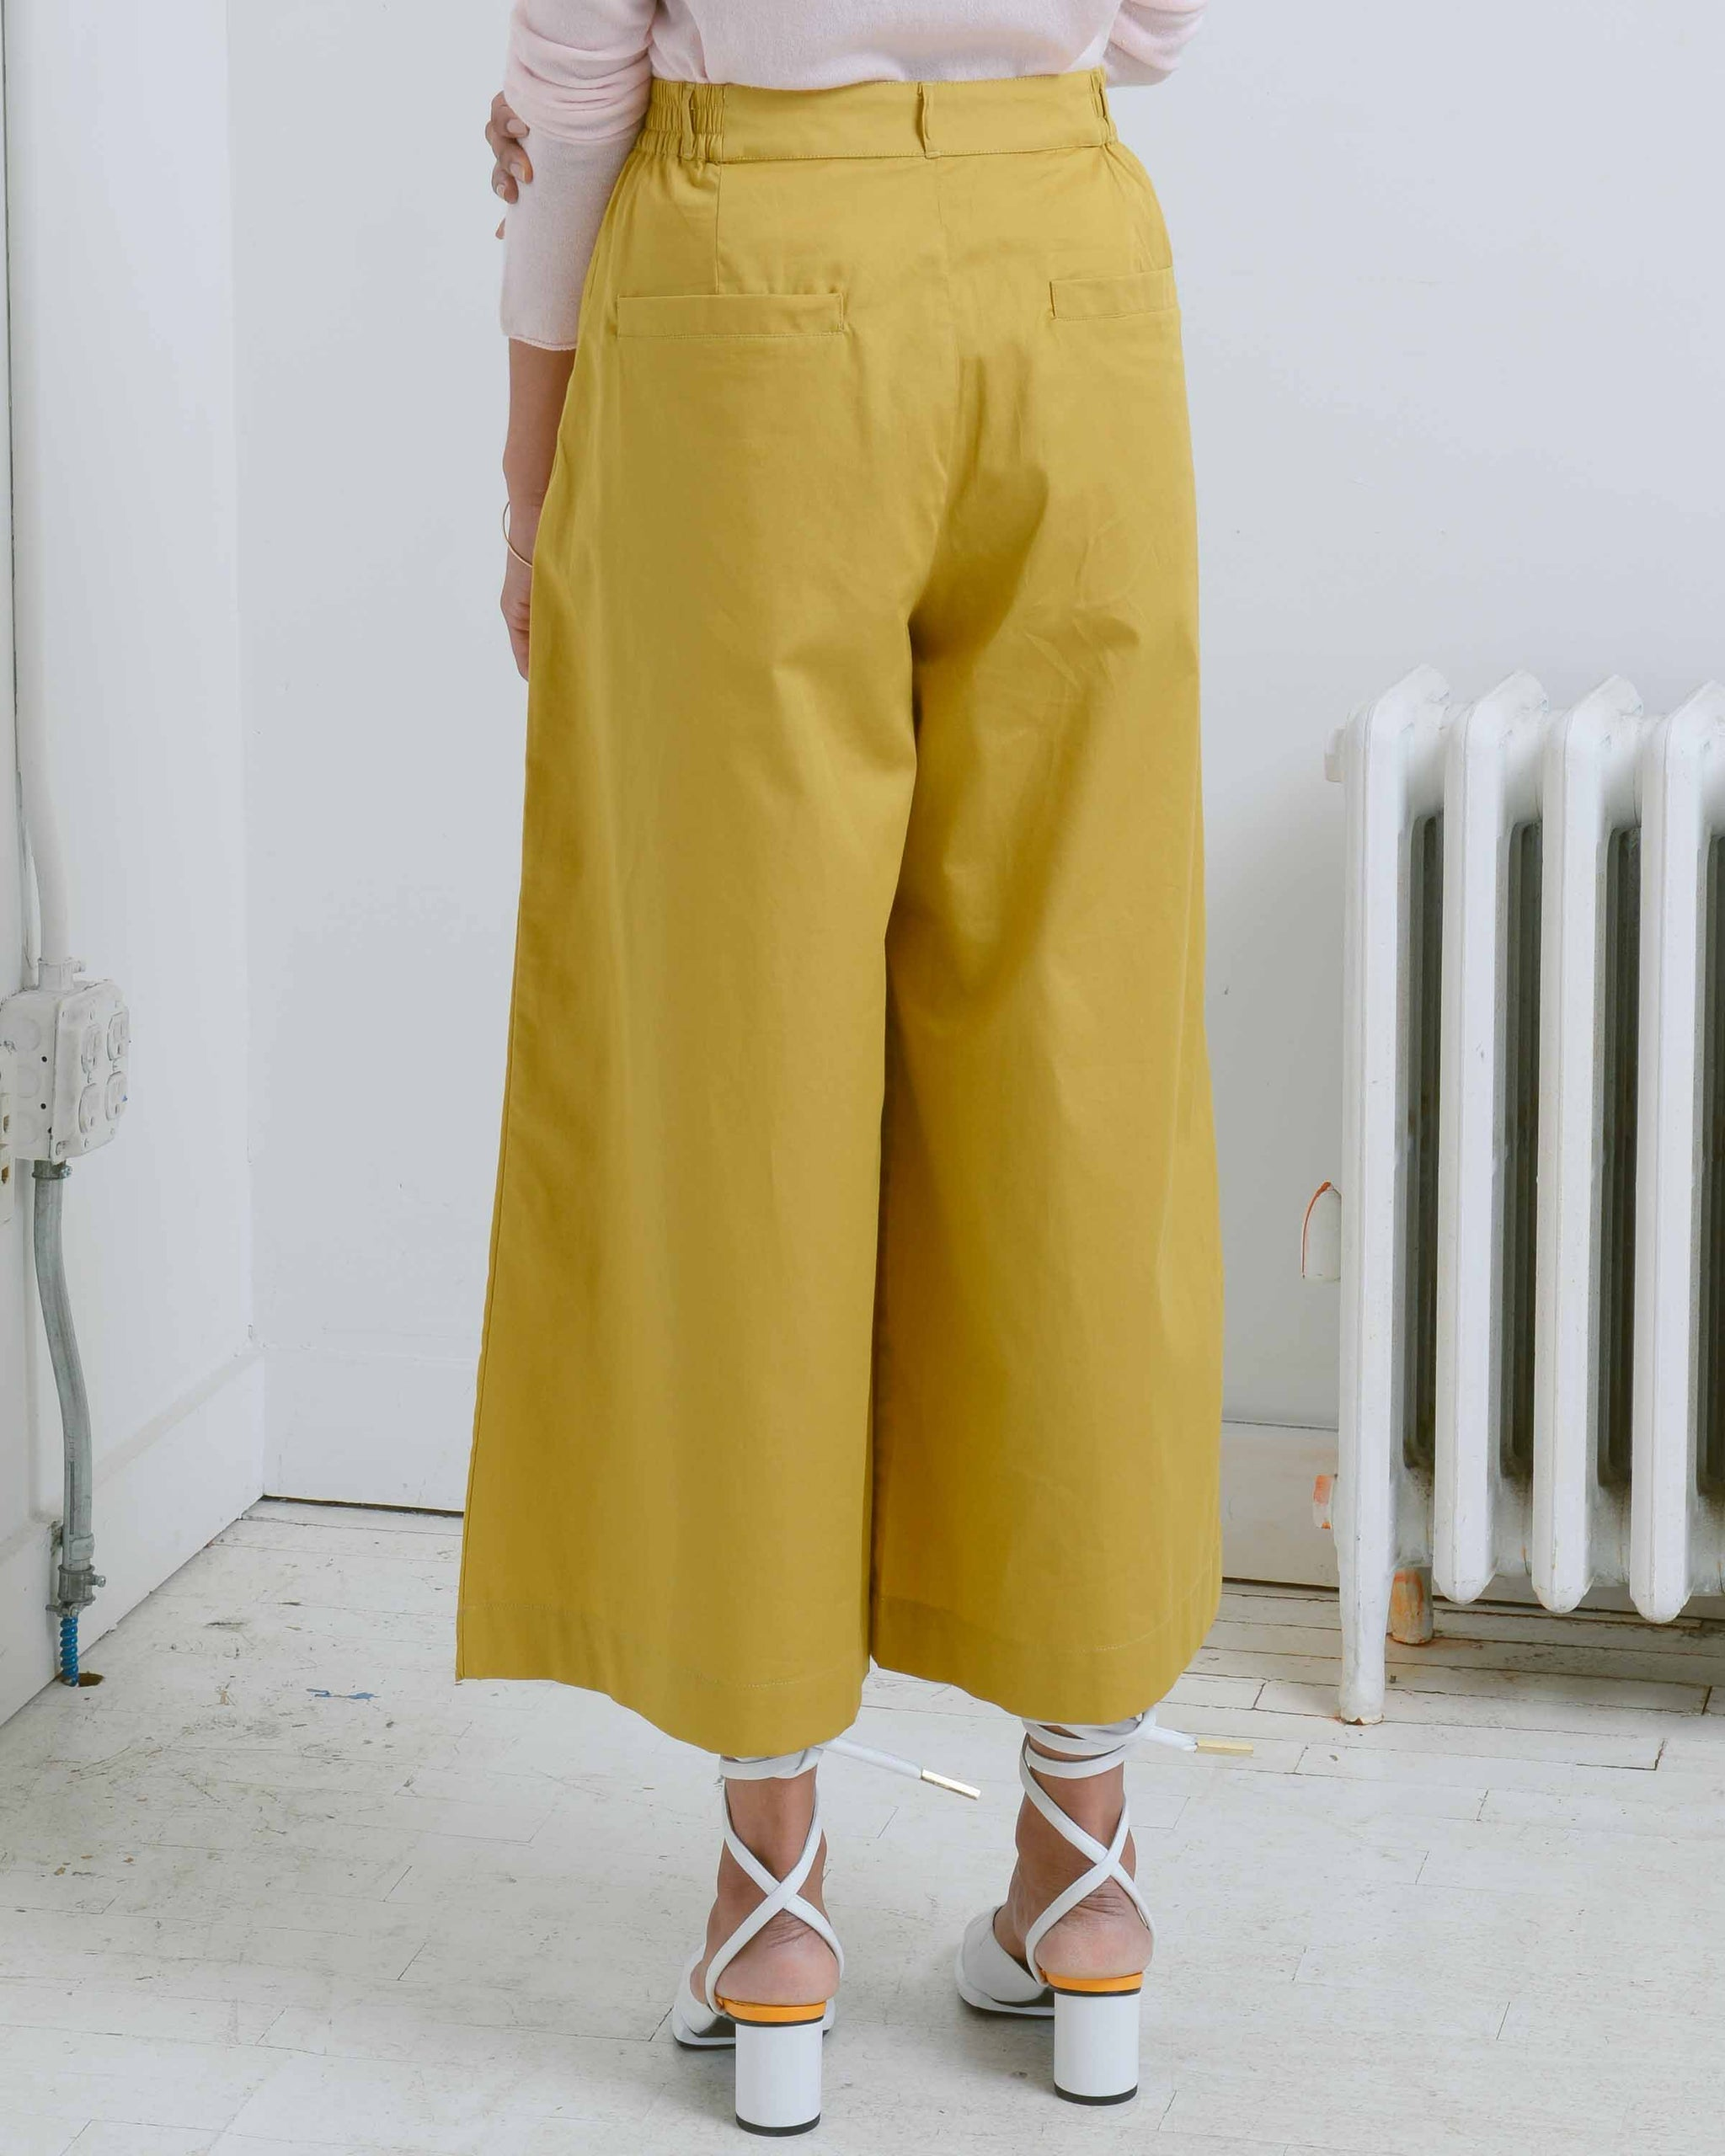 Gold Casting Pant